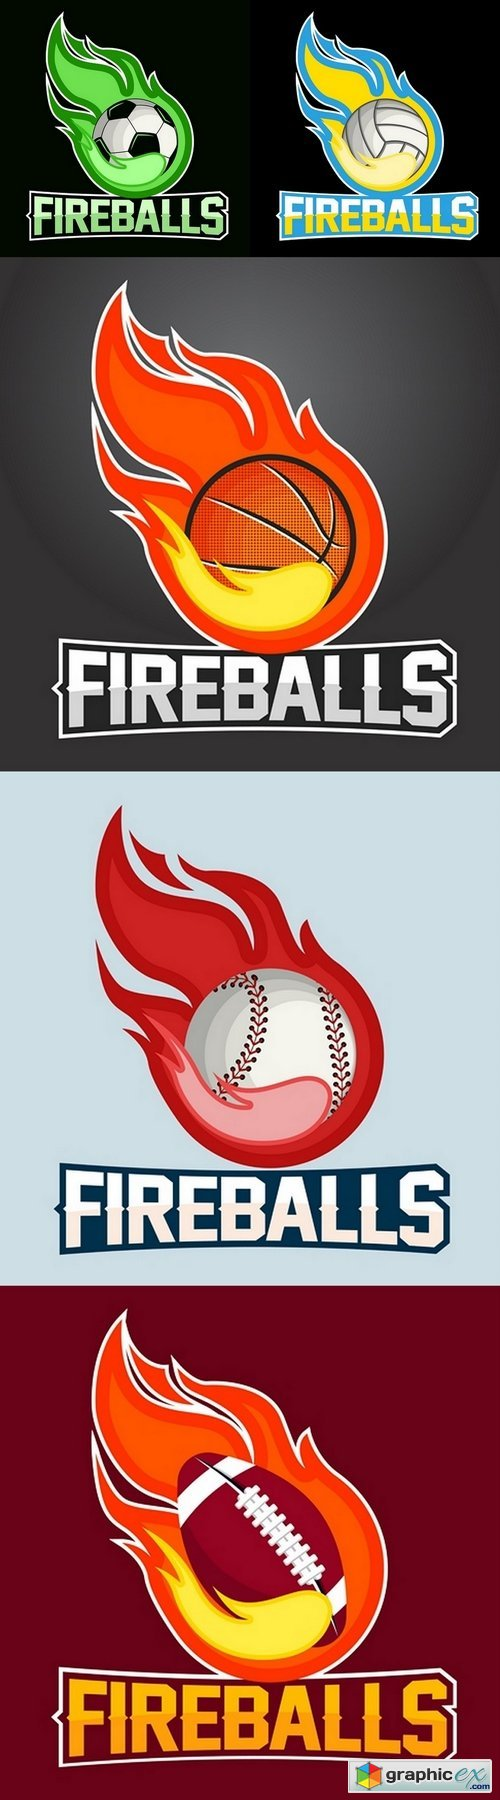 Flying ball with fire flames on dark background